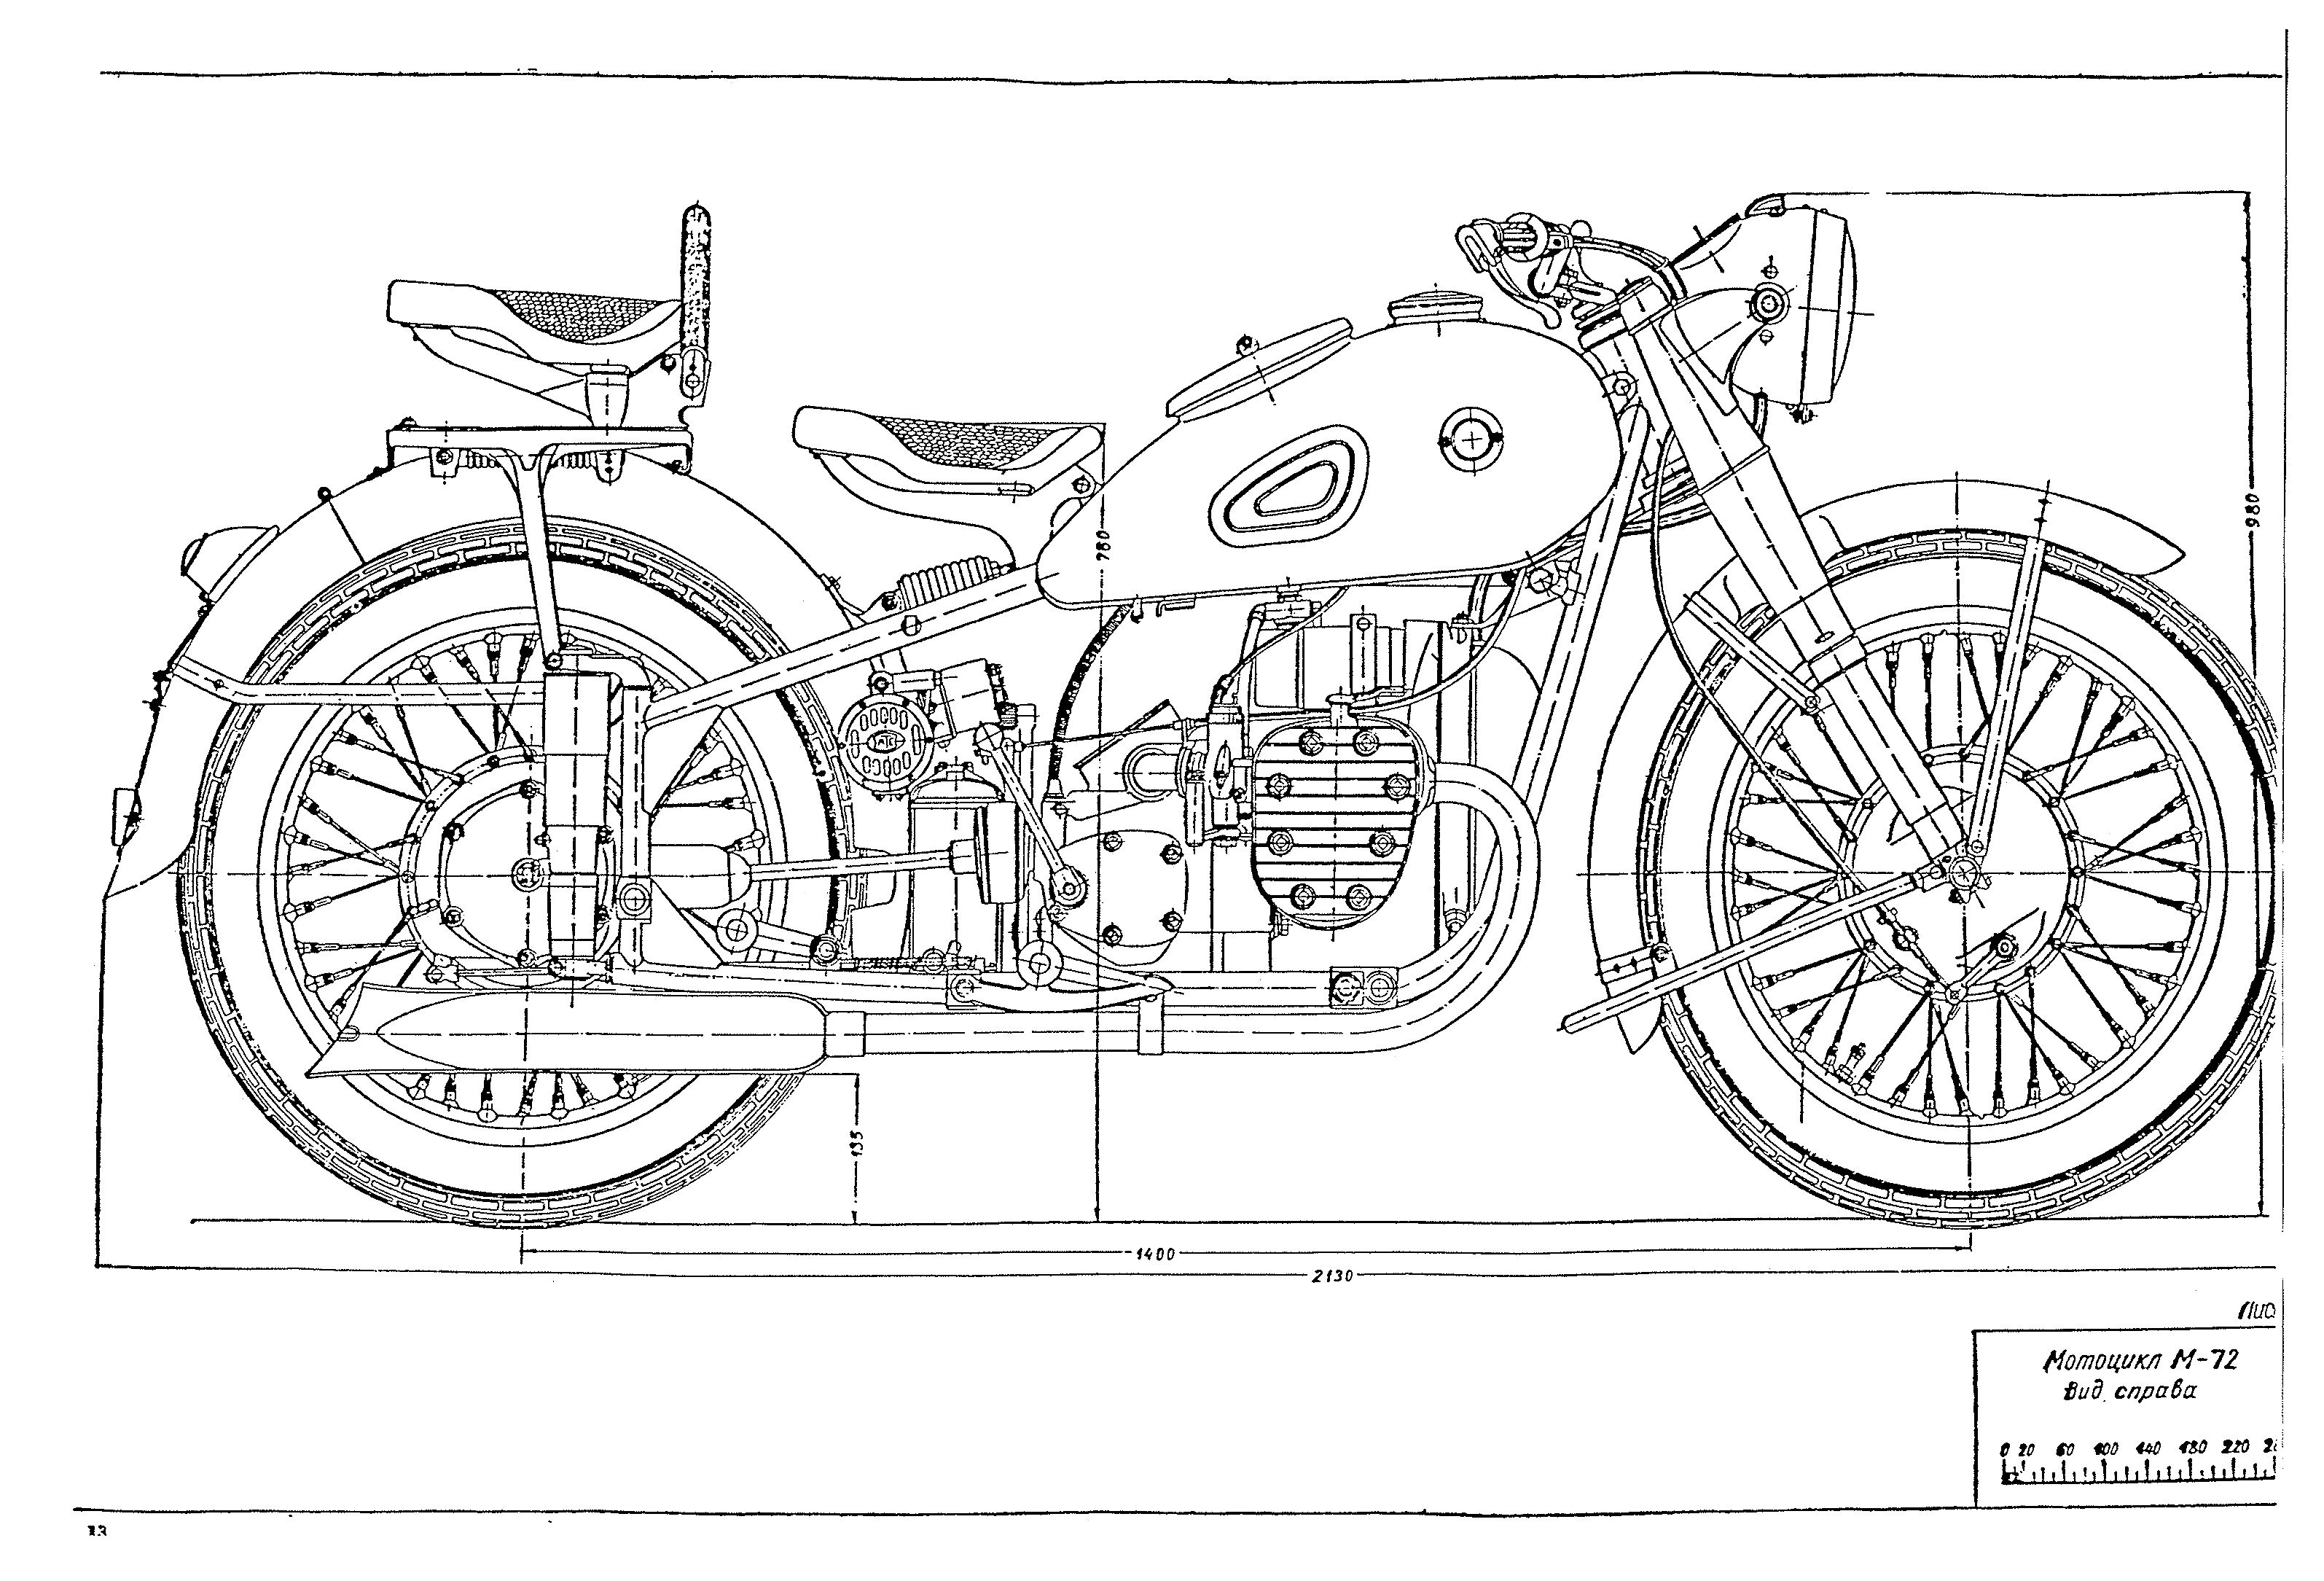 motorcycle blueprints google search [ 3189 x 2169 Pixel ]